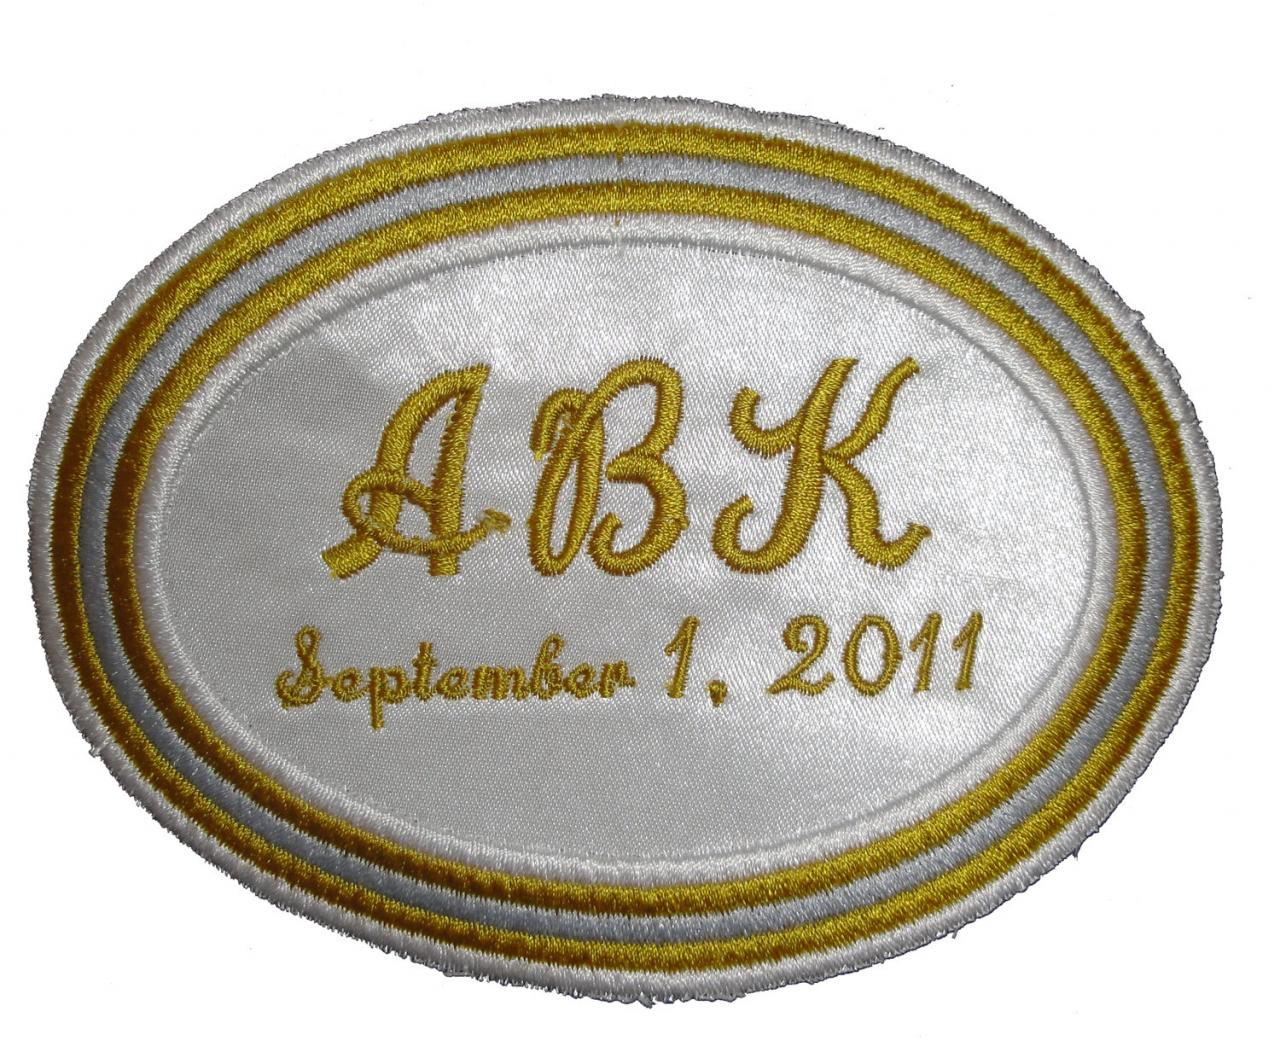 50th Wedding Anniversary Oval Label in Gold, Silver and White Embroidered and Personalized